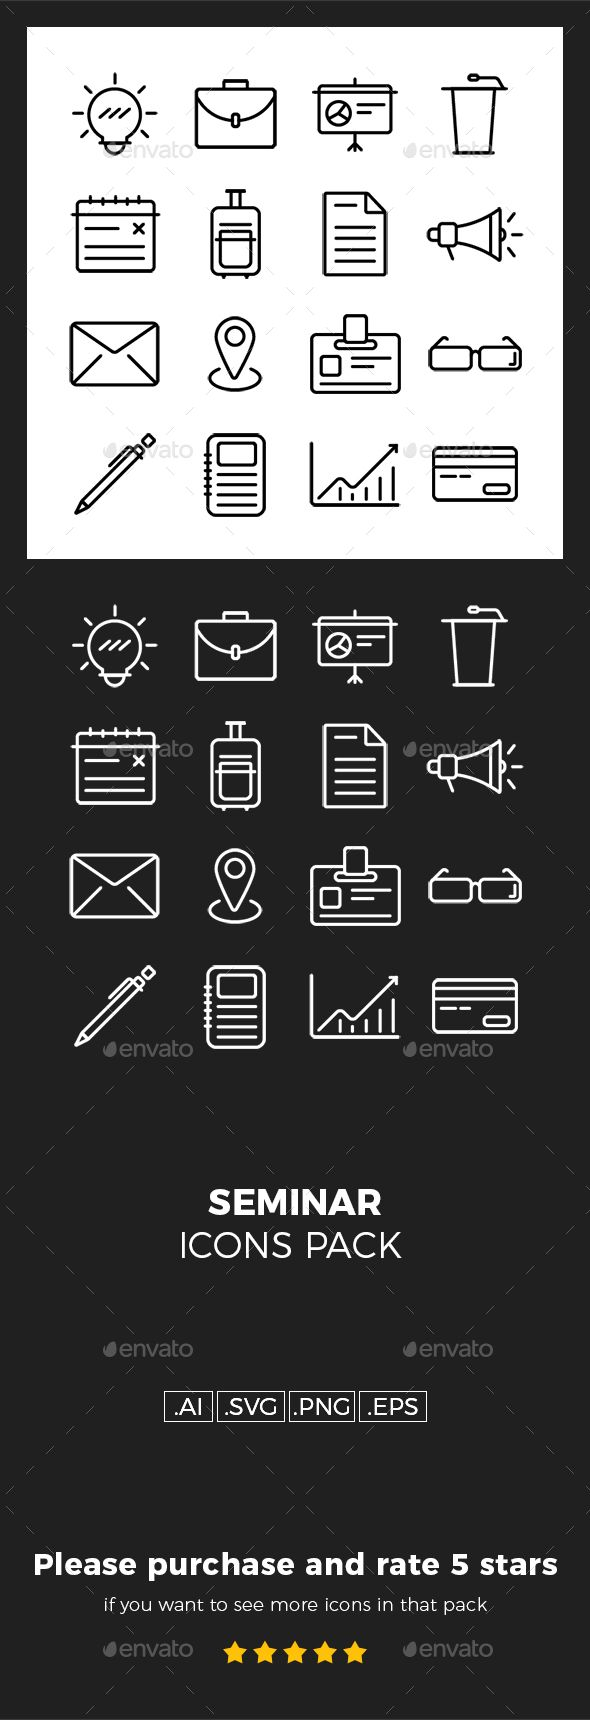 Seminar Icons Pack Icon Pack Icon Graphic Design Flyer